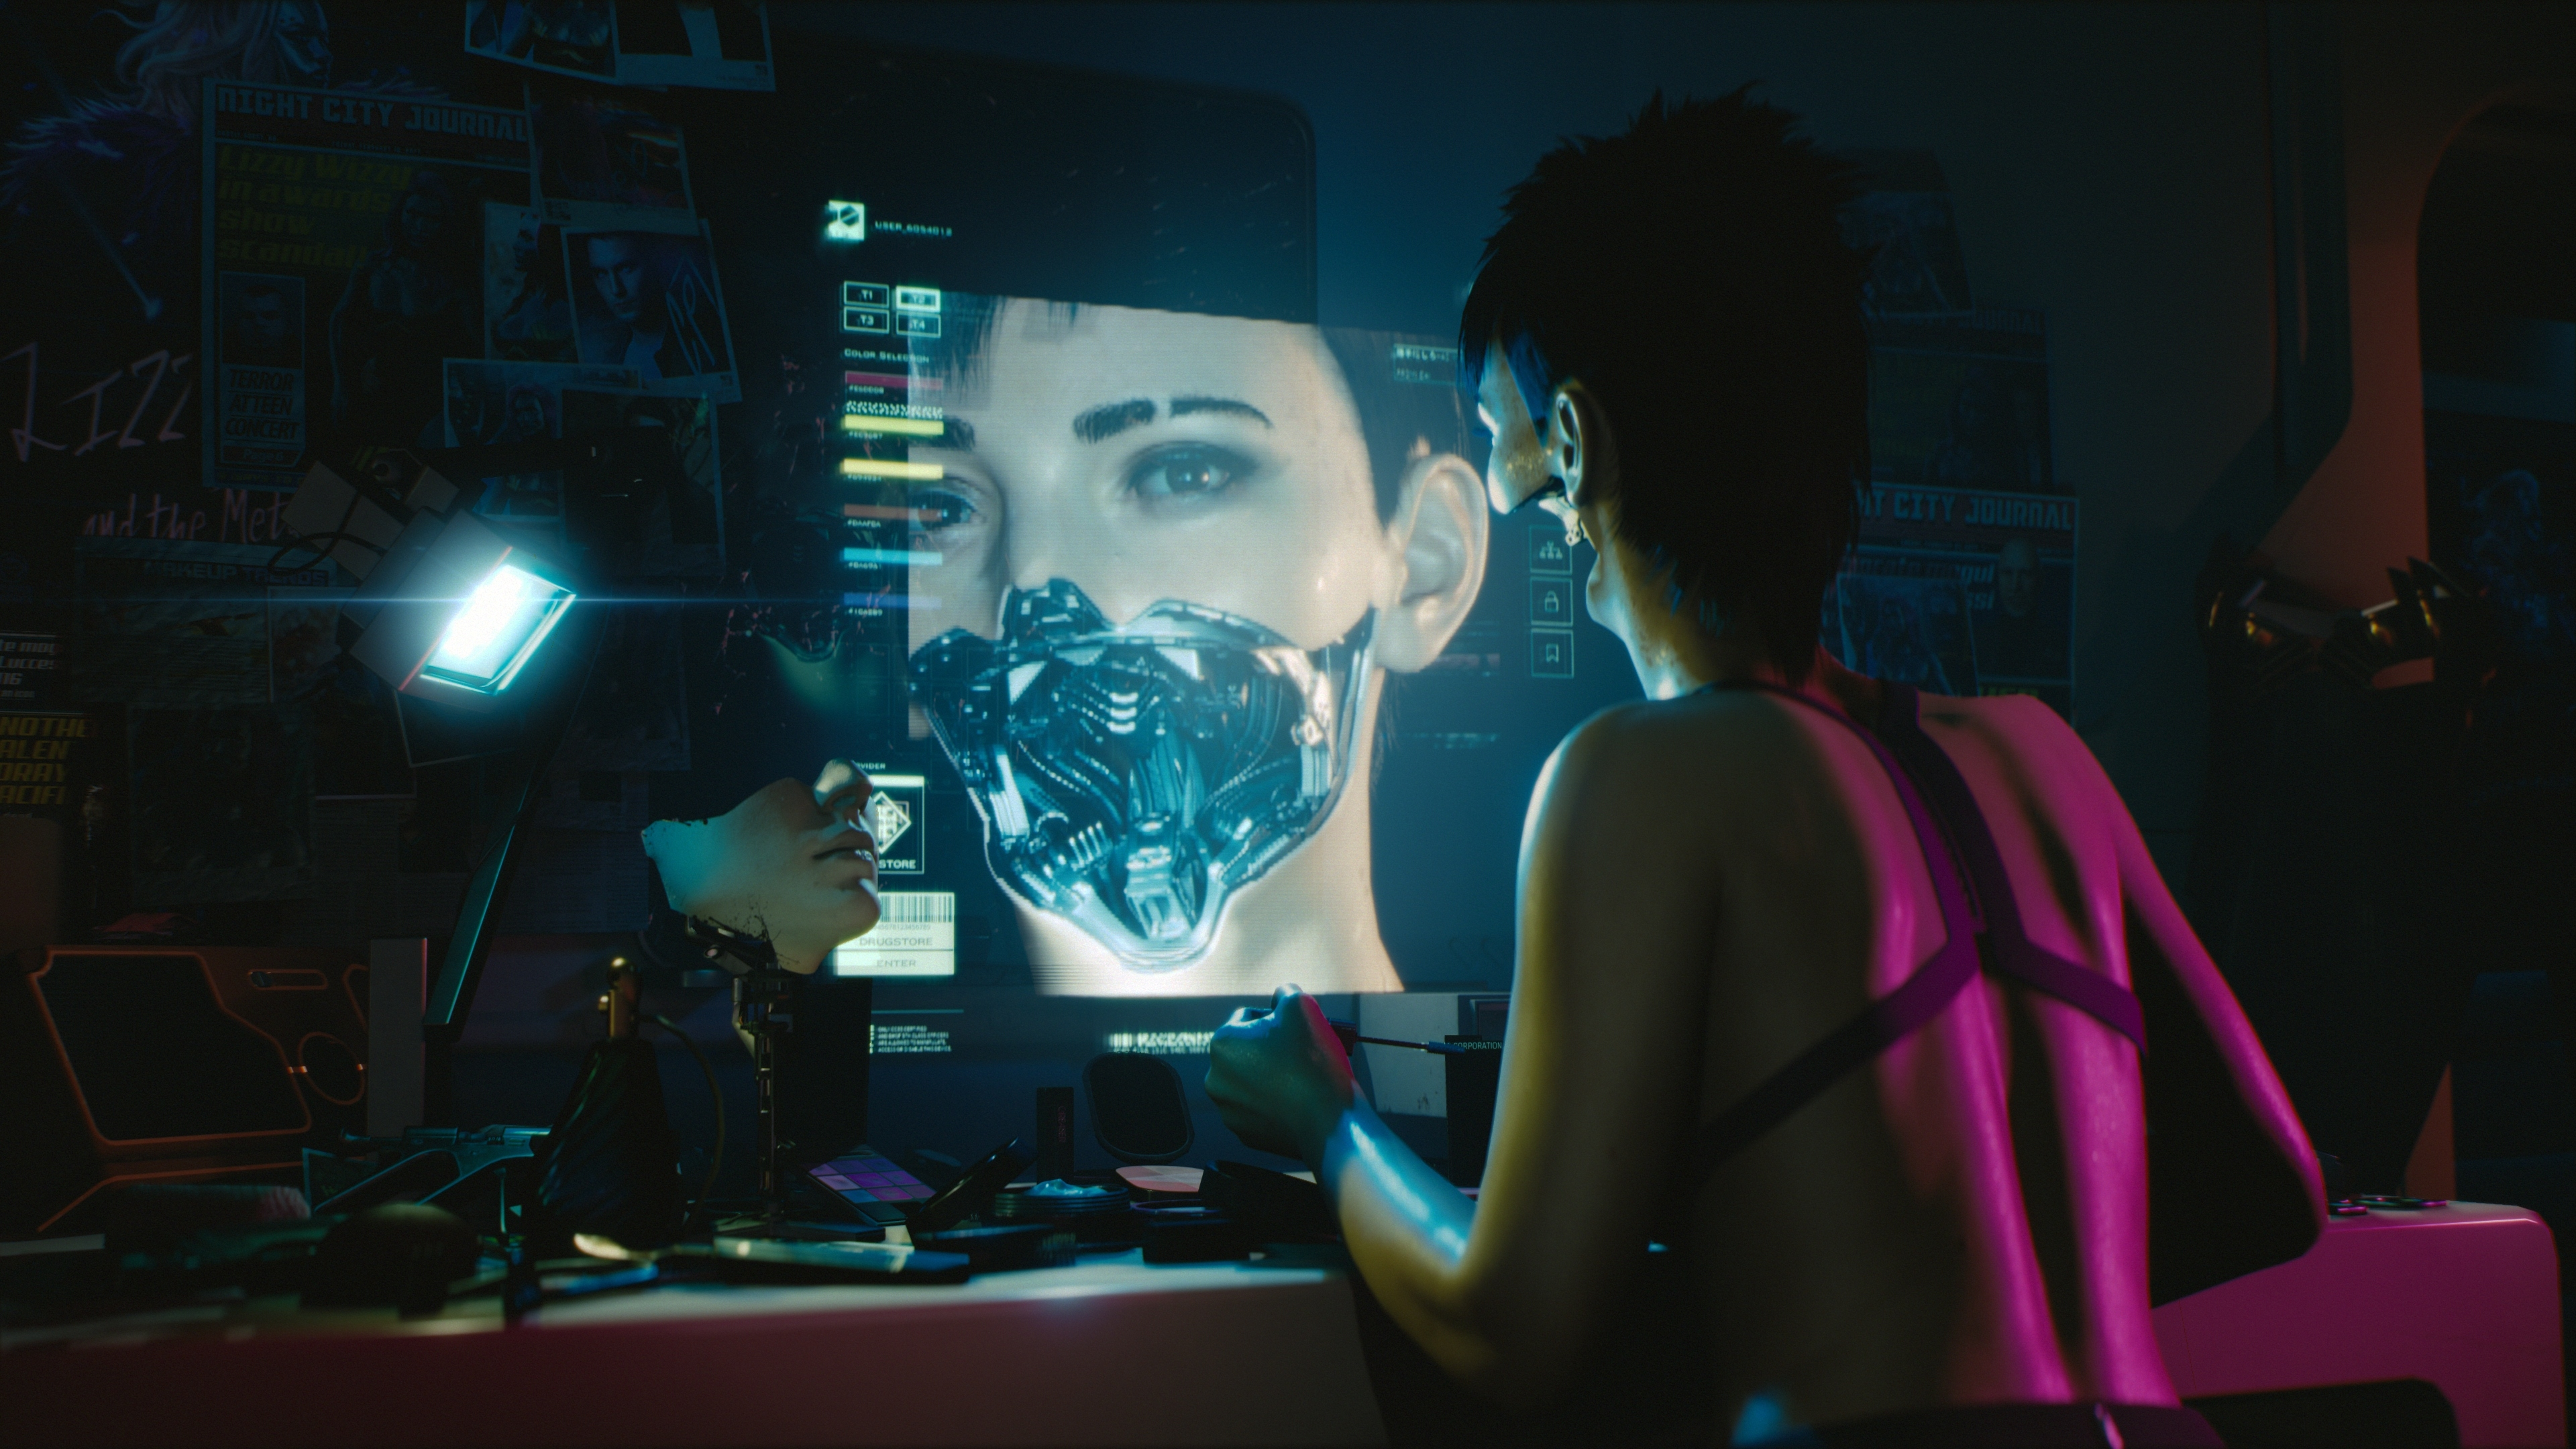 Cyberpunk 2077 no estará presente en The Game Awards